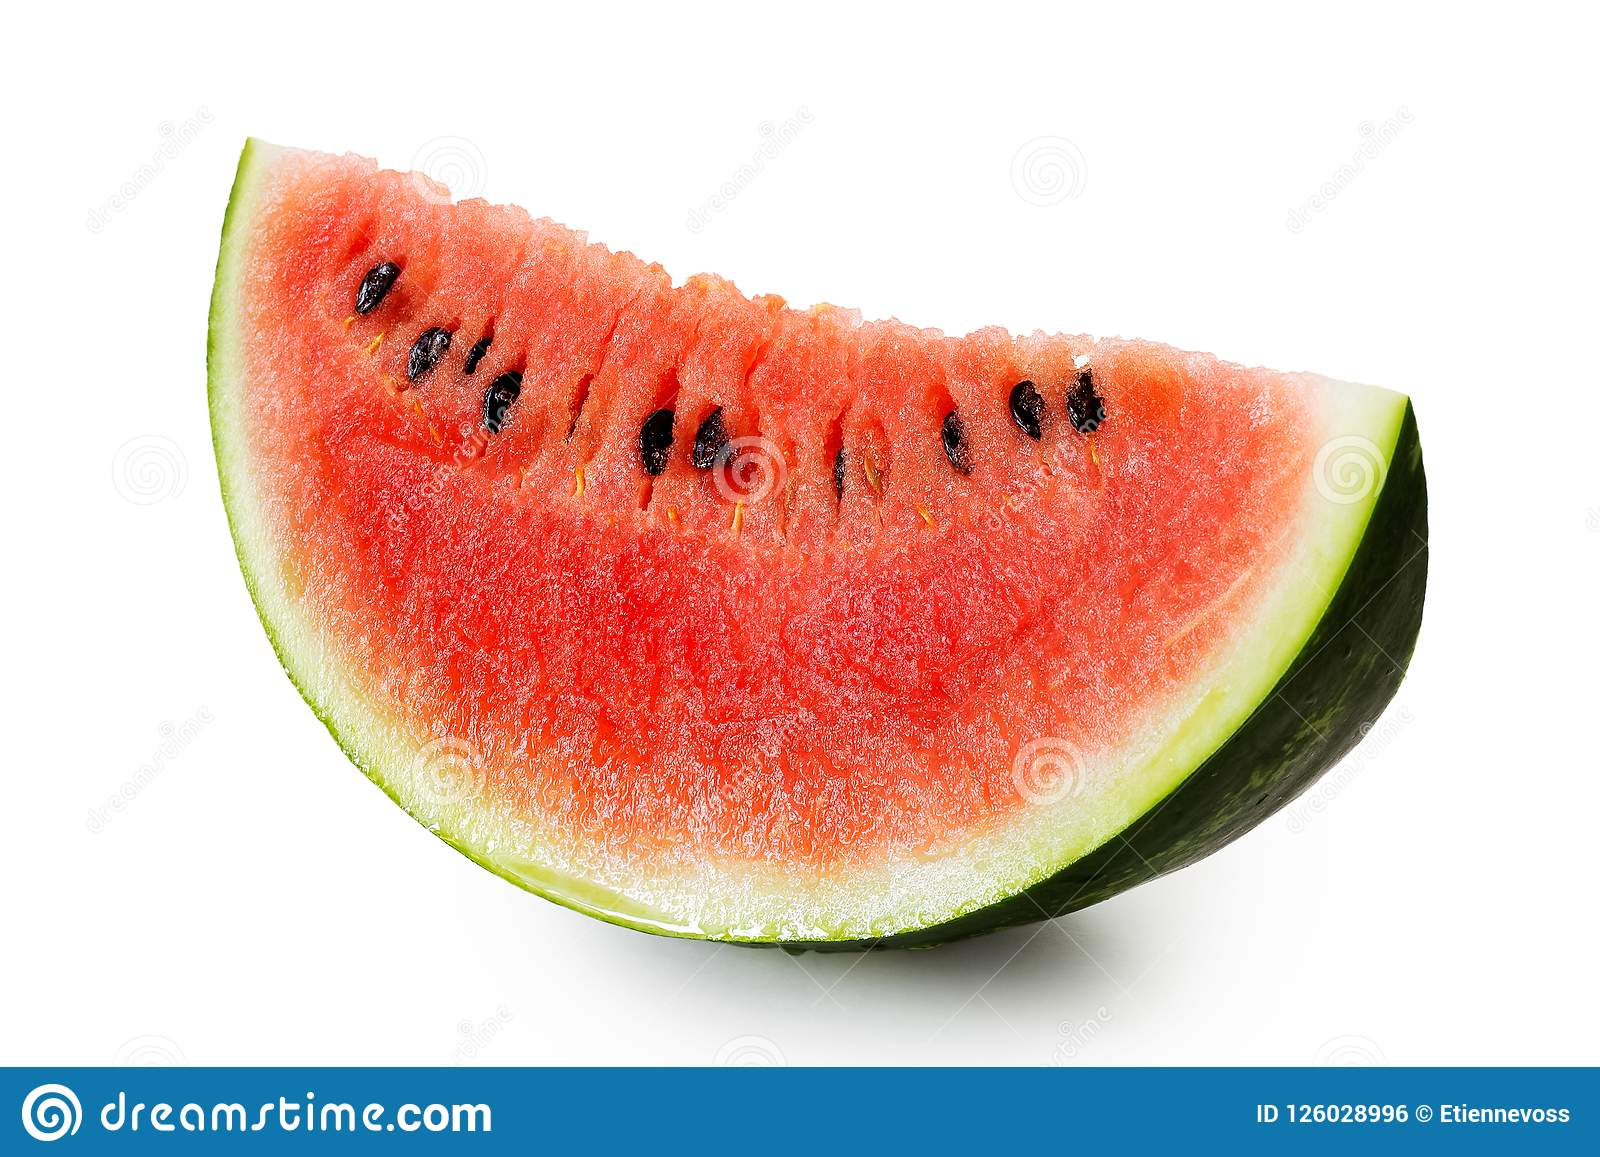 Wedge of watermelon with seeds isolated on white.